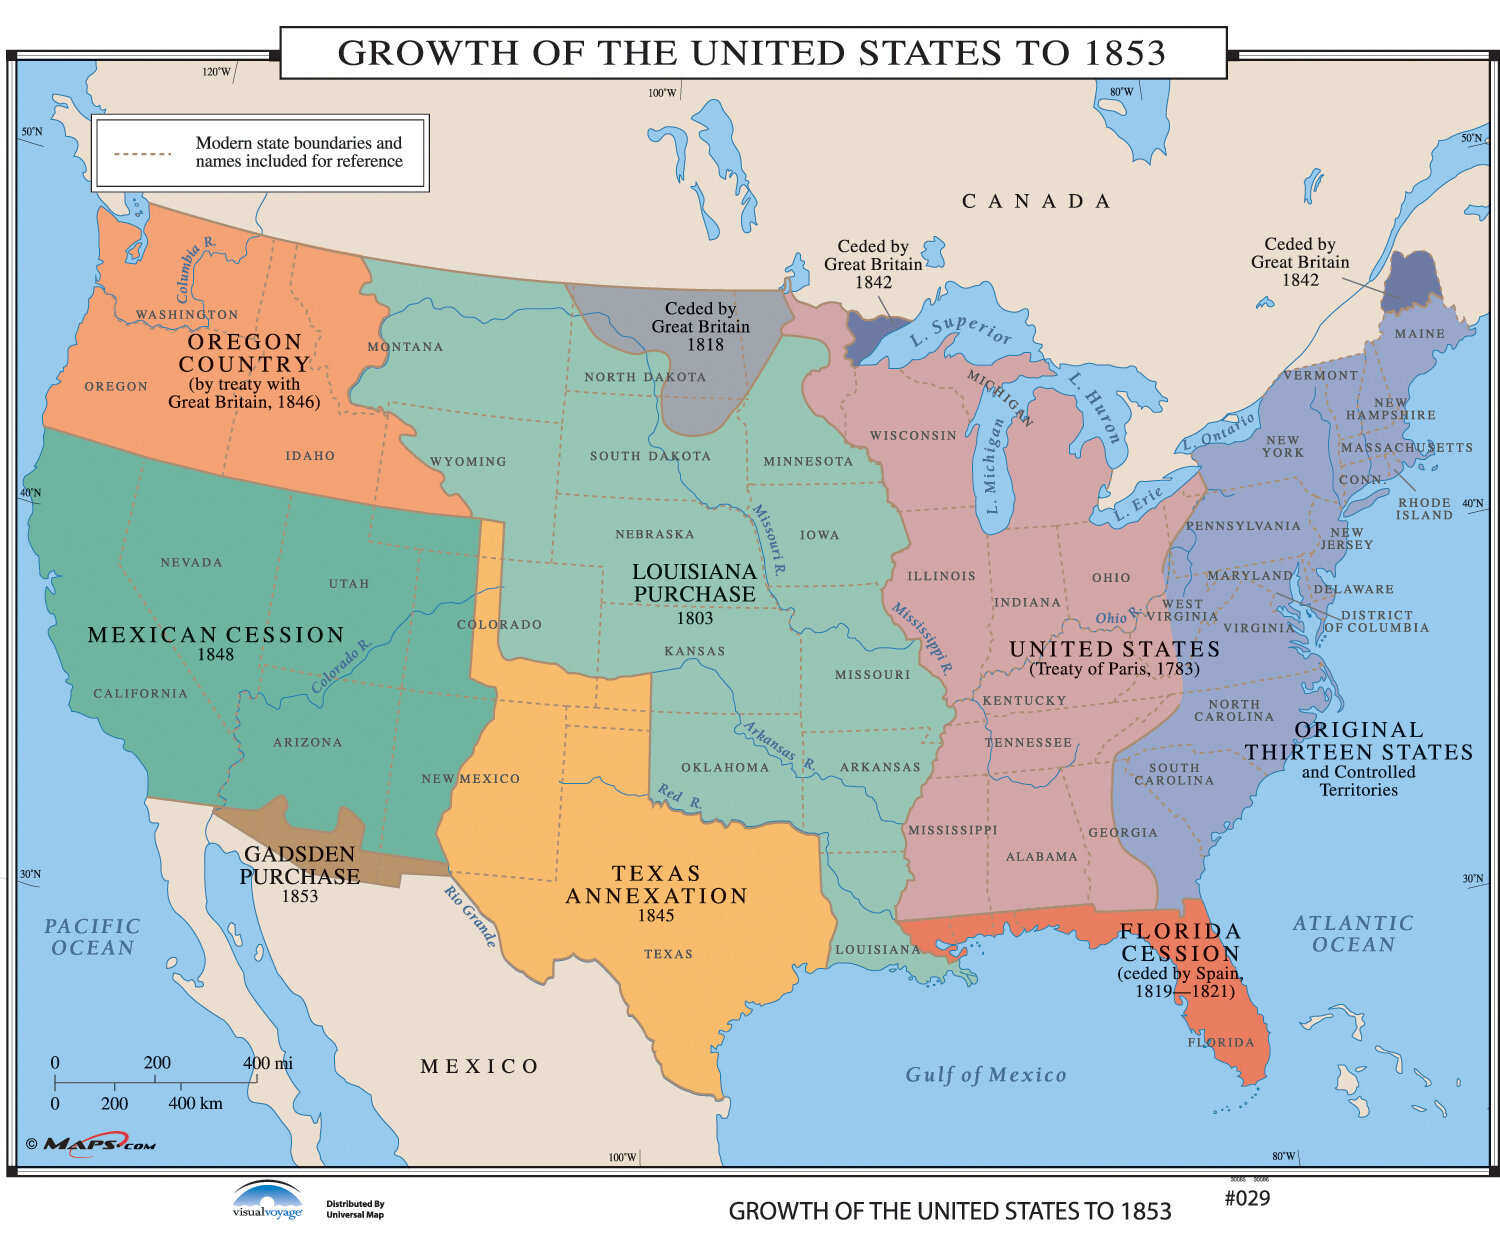 Image Map Of United States.Universal Map U S History Wall Maps Growth Of U S To 1853 Wayfair